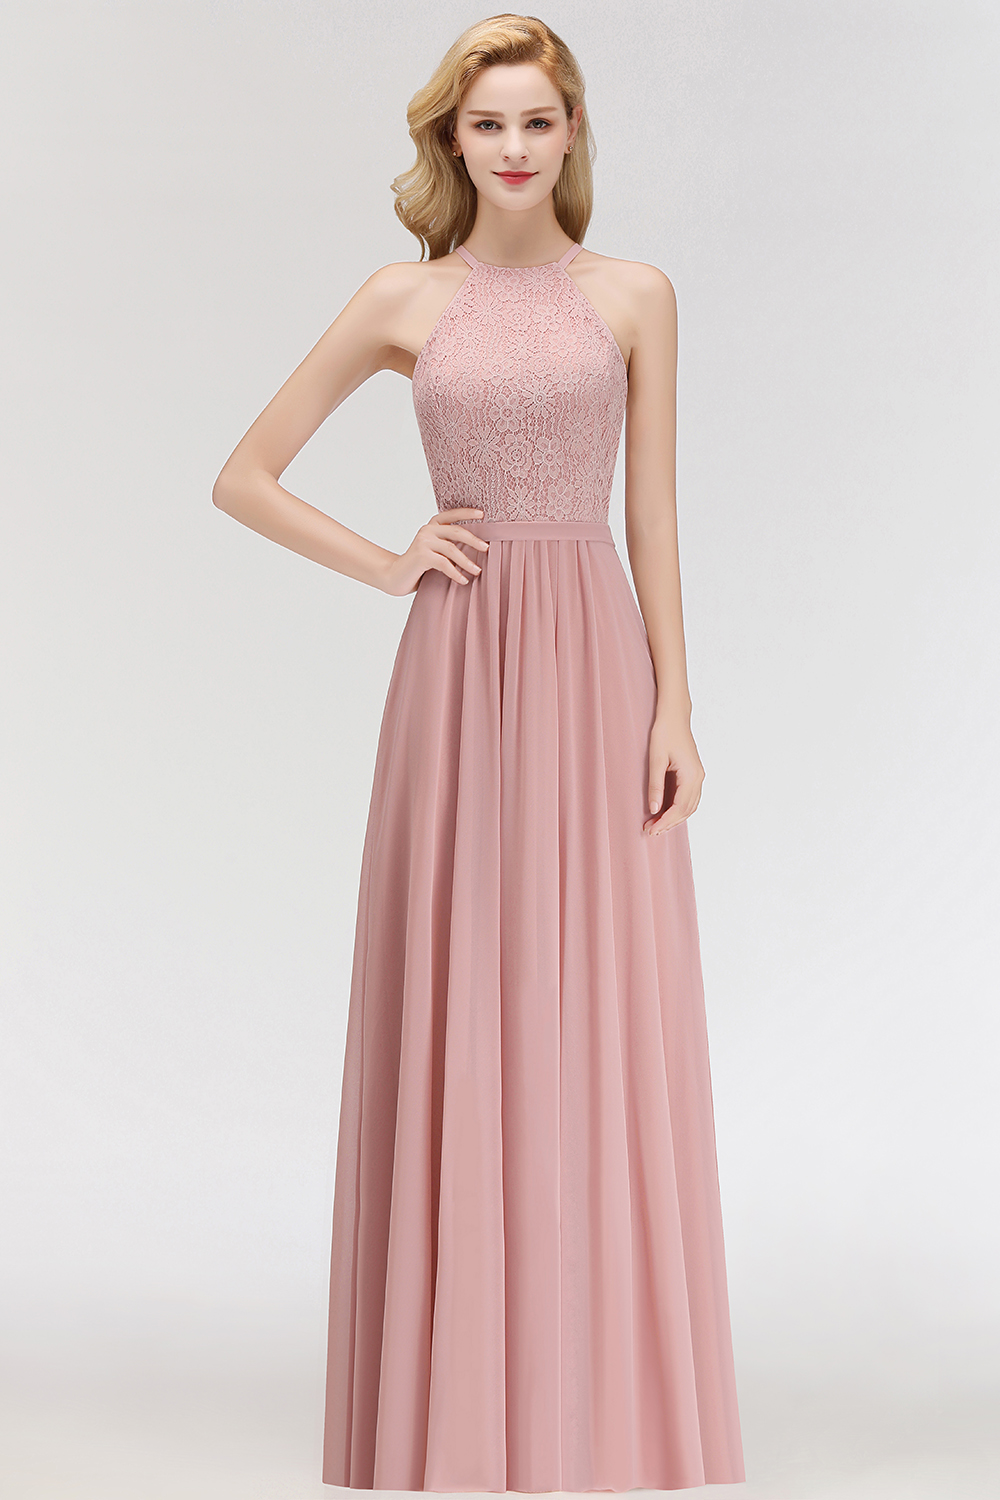 Elegant Blush Pink Halter Floor Length Bridesmaid Dresses A-line Lace Top  Sleeveless Wedding Party Dress Elegant for Women